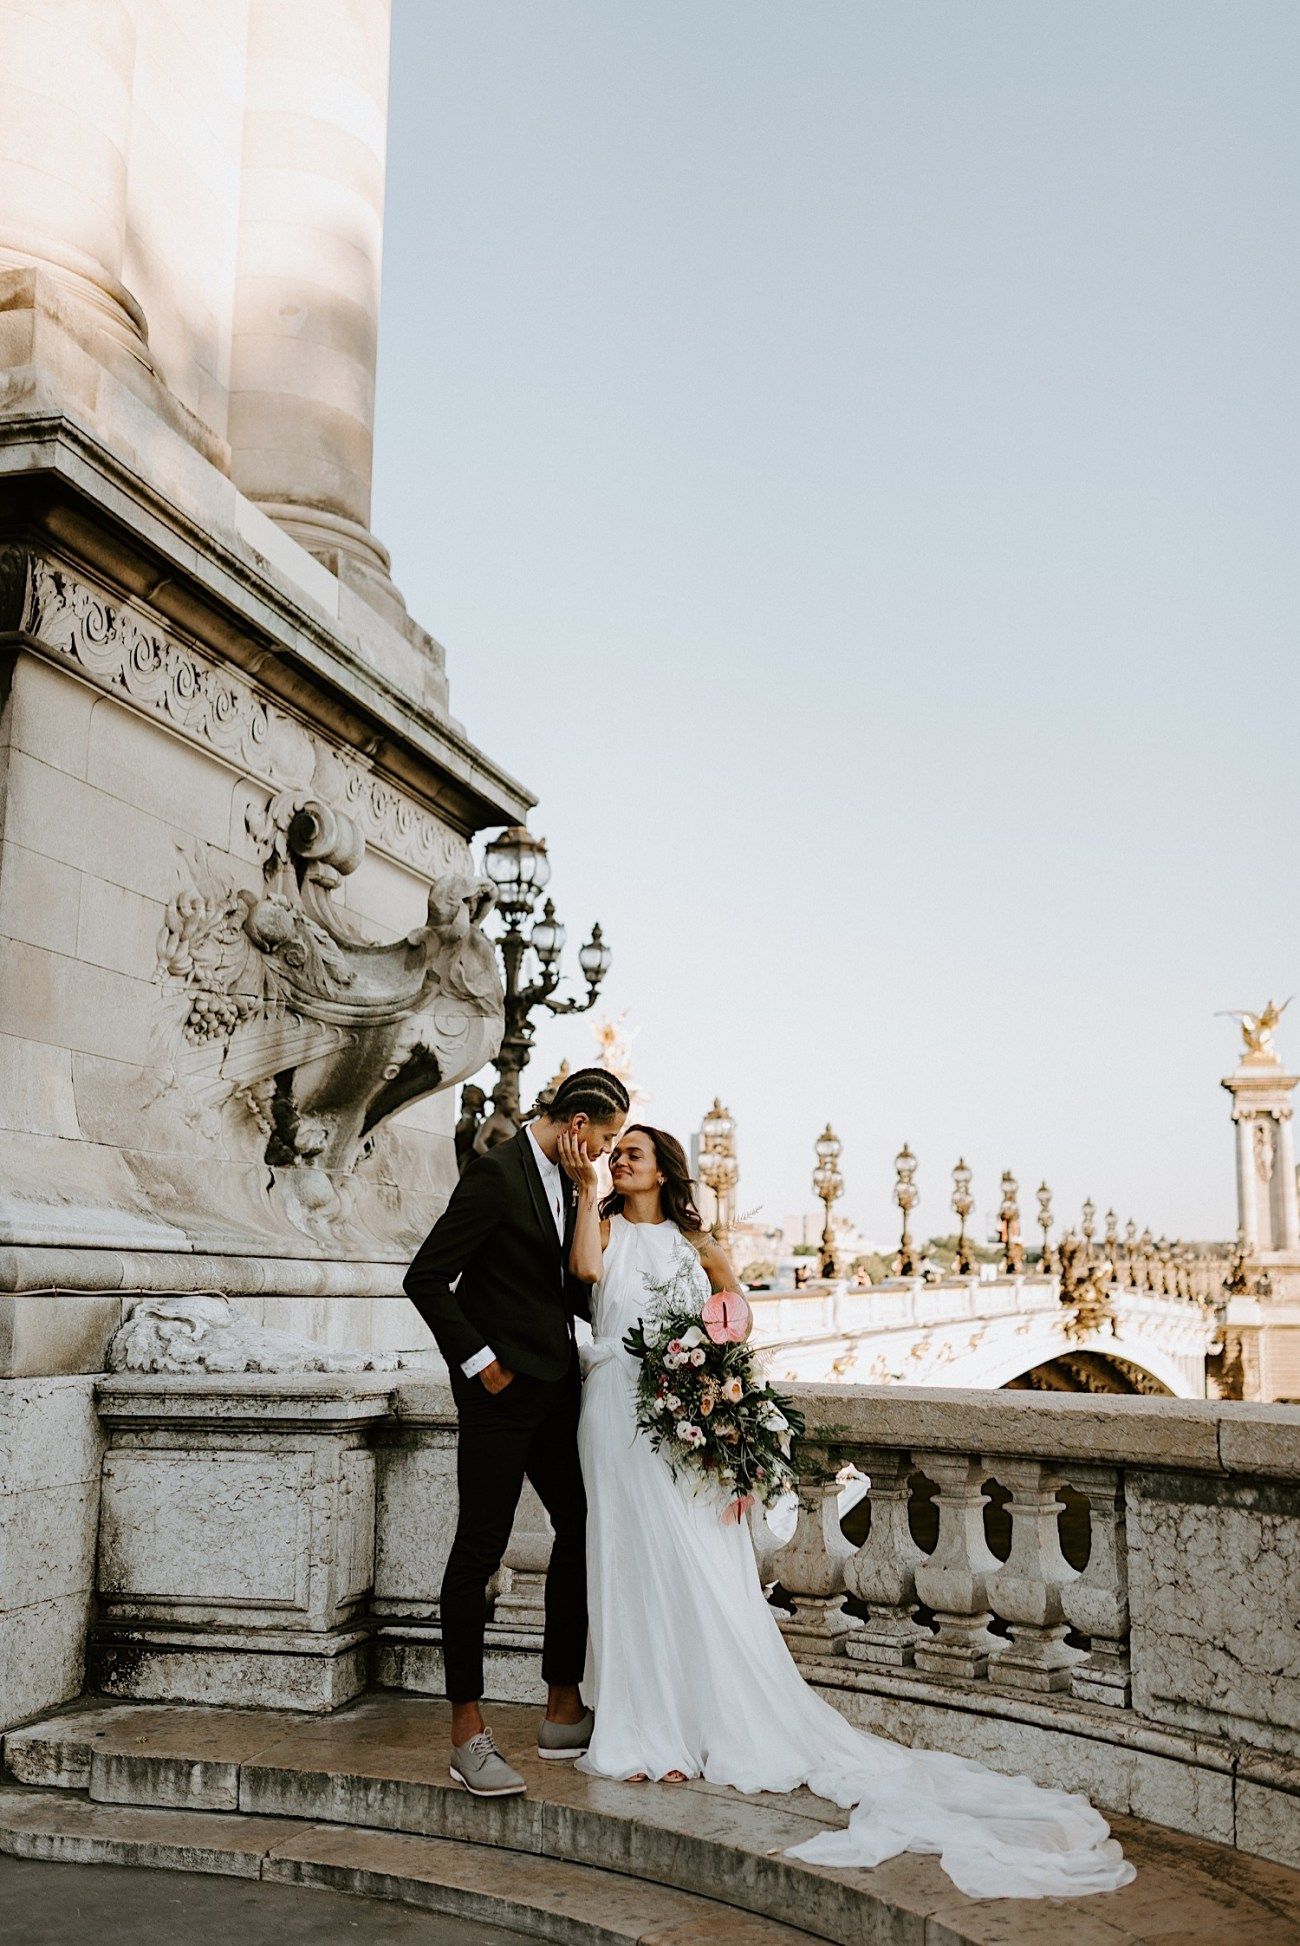 Paris Wedding Photos Paris Wedding Photographer Paris Photographe De Marriage Pont Alexandre Wedding Photos Anais Possamai Photography 22